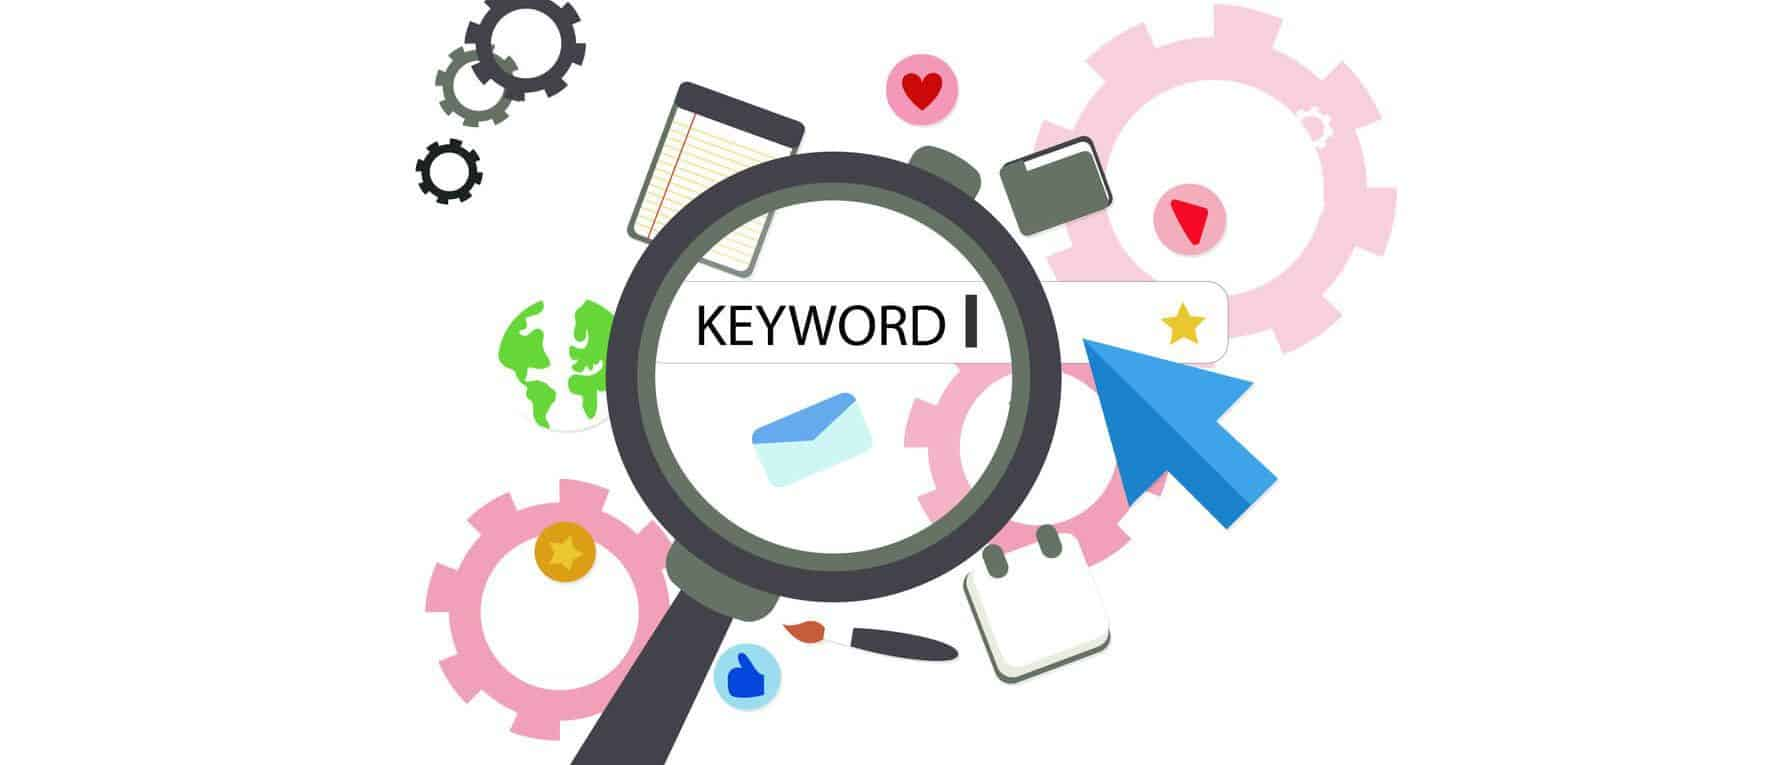 SEO Keywords © Fotolia 2016 / ramsah